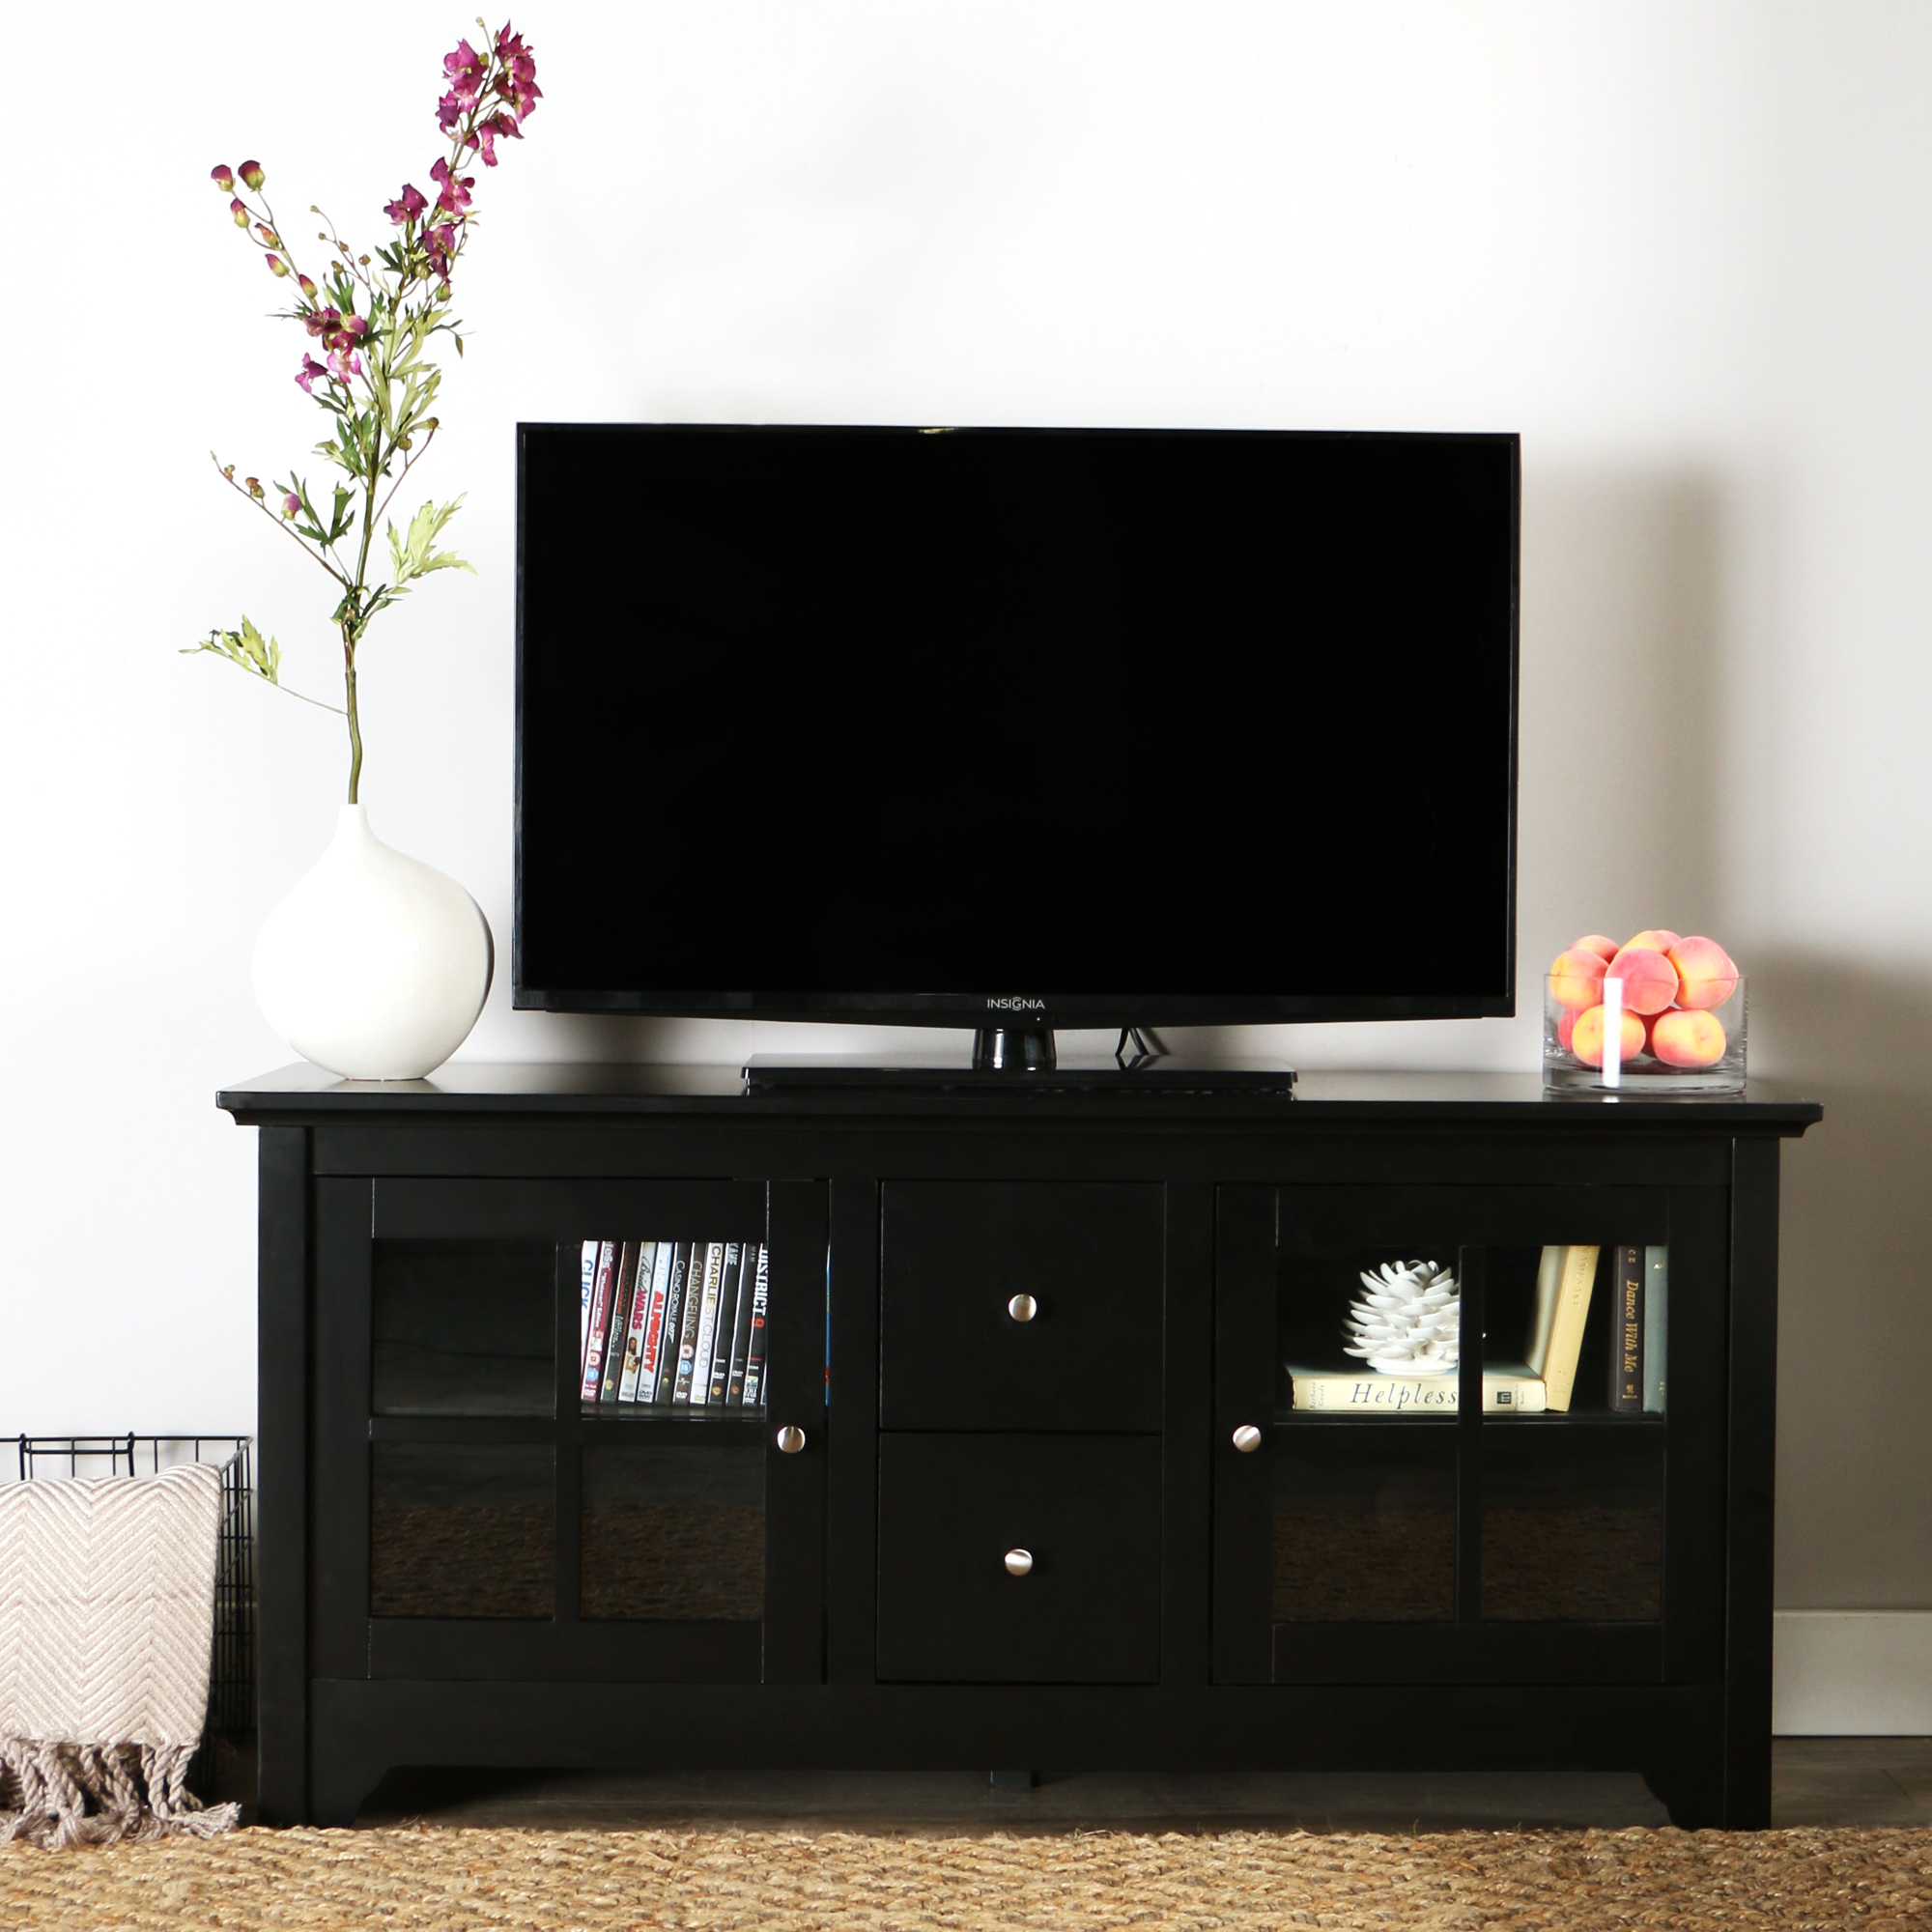 52 Transitional Wood Glass Media Tv Stand Storage Console